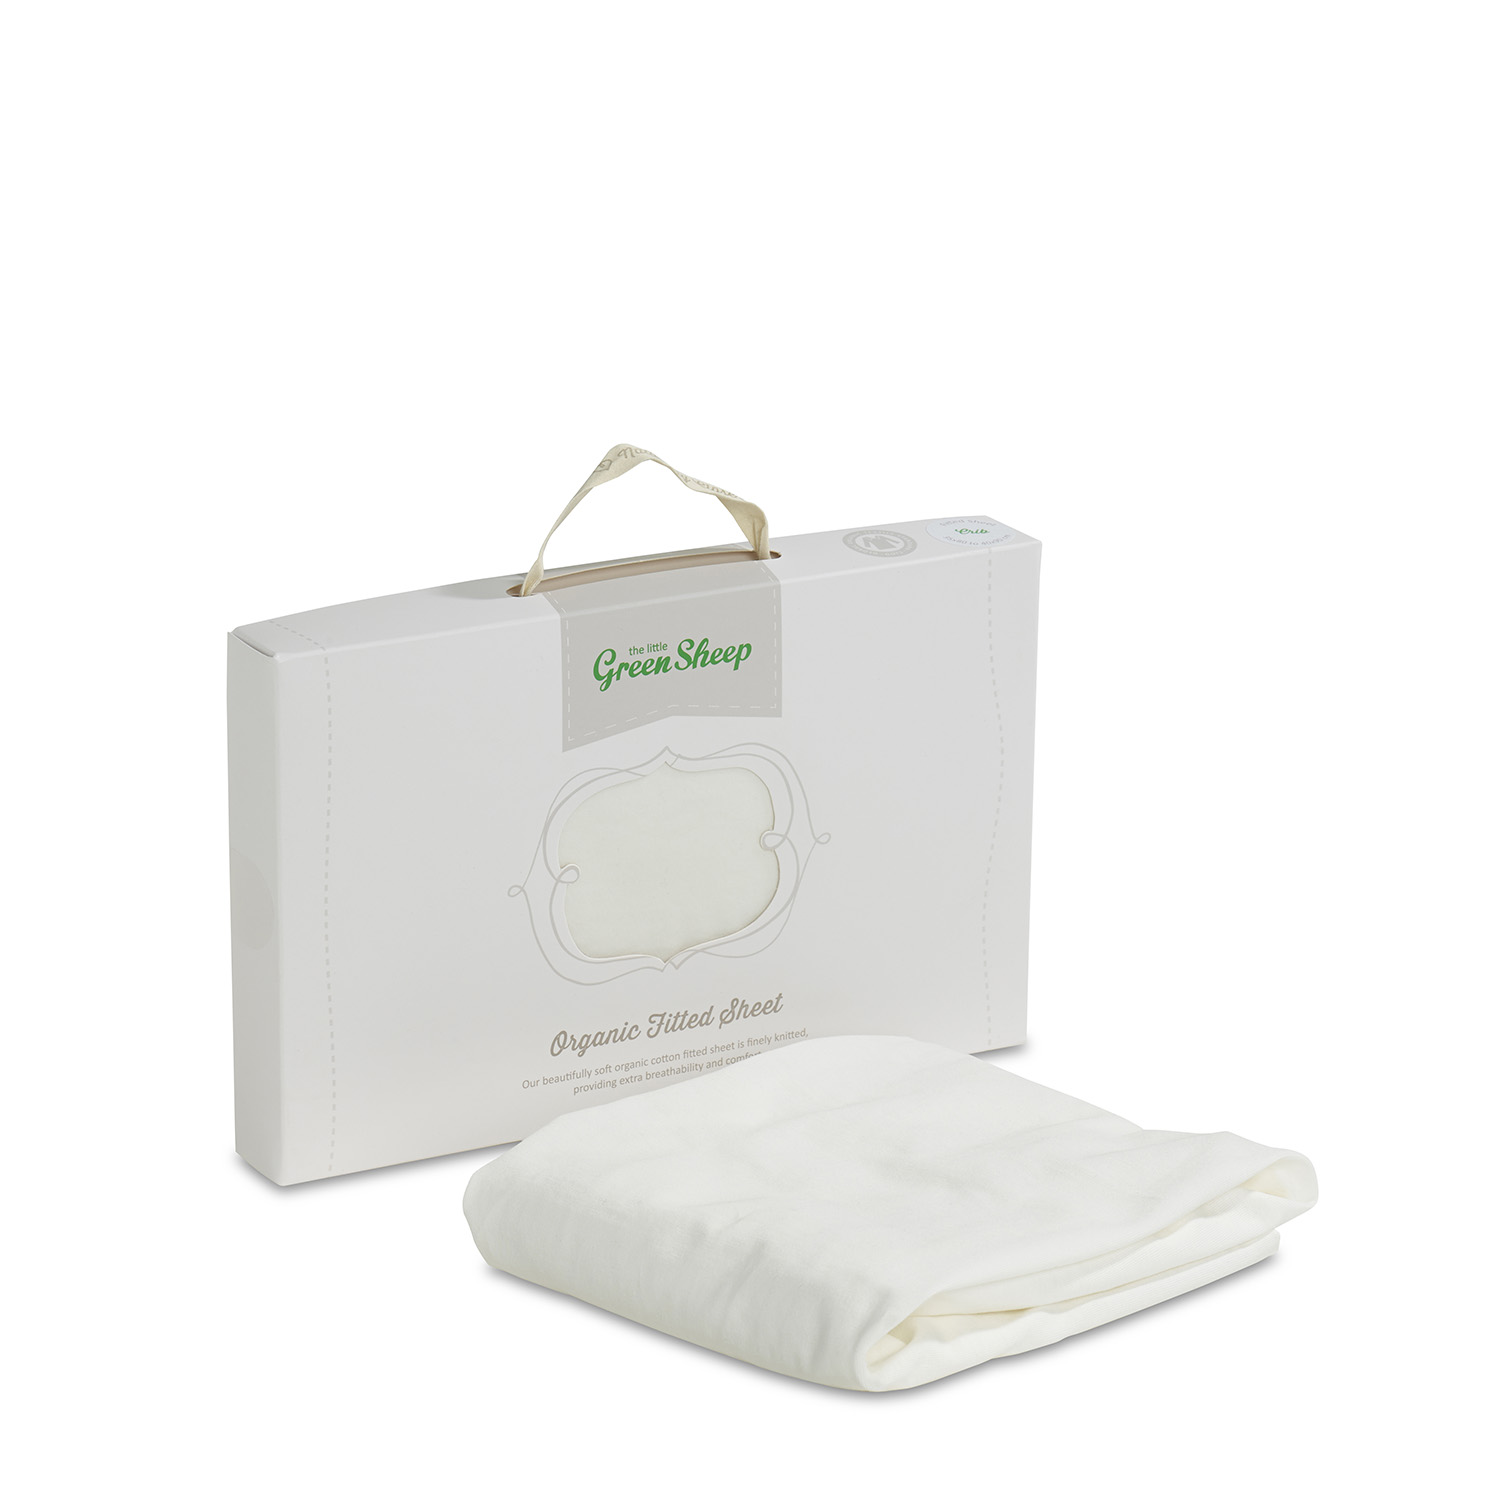 The Little Green Sheep Organic Cotton Stokke Mini Crib Fitted Sheet